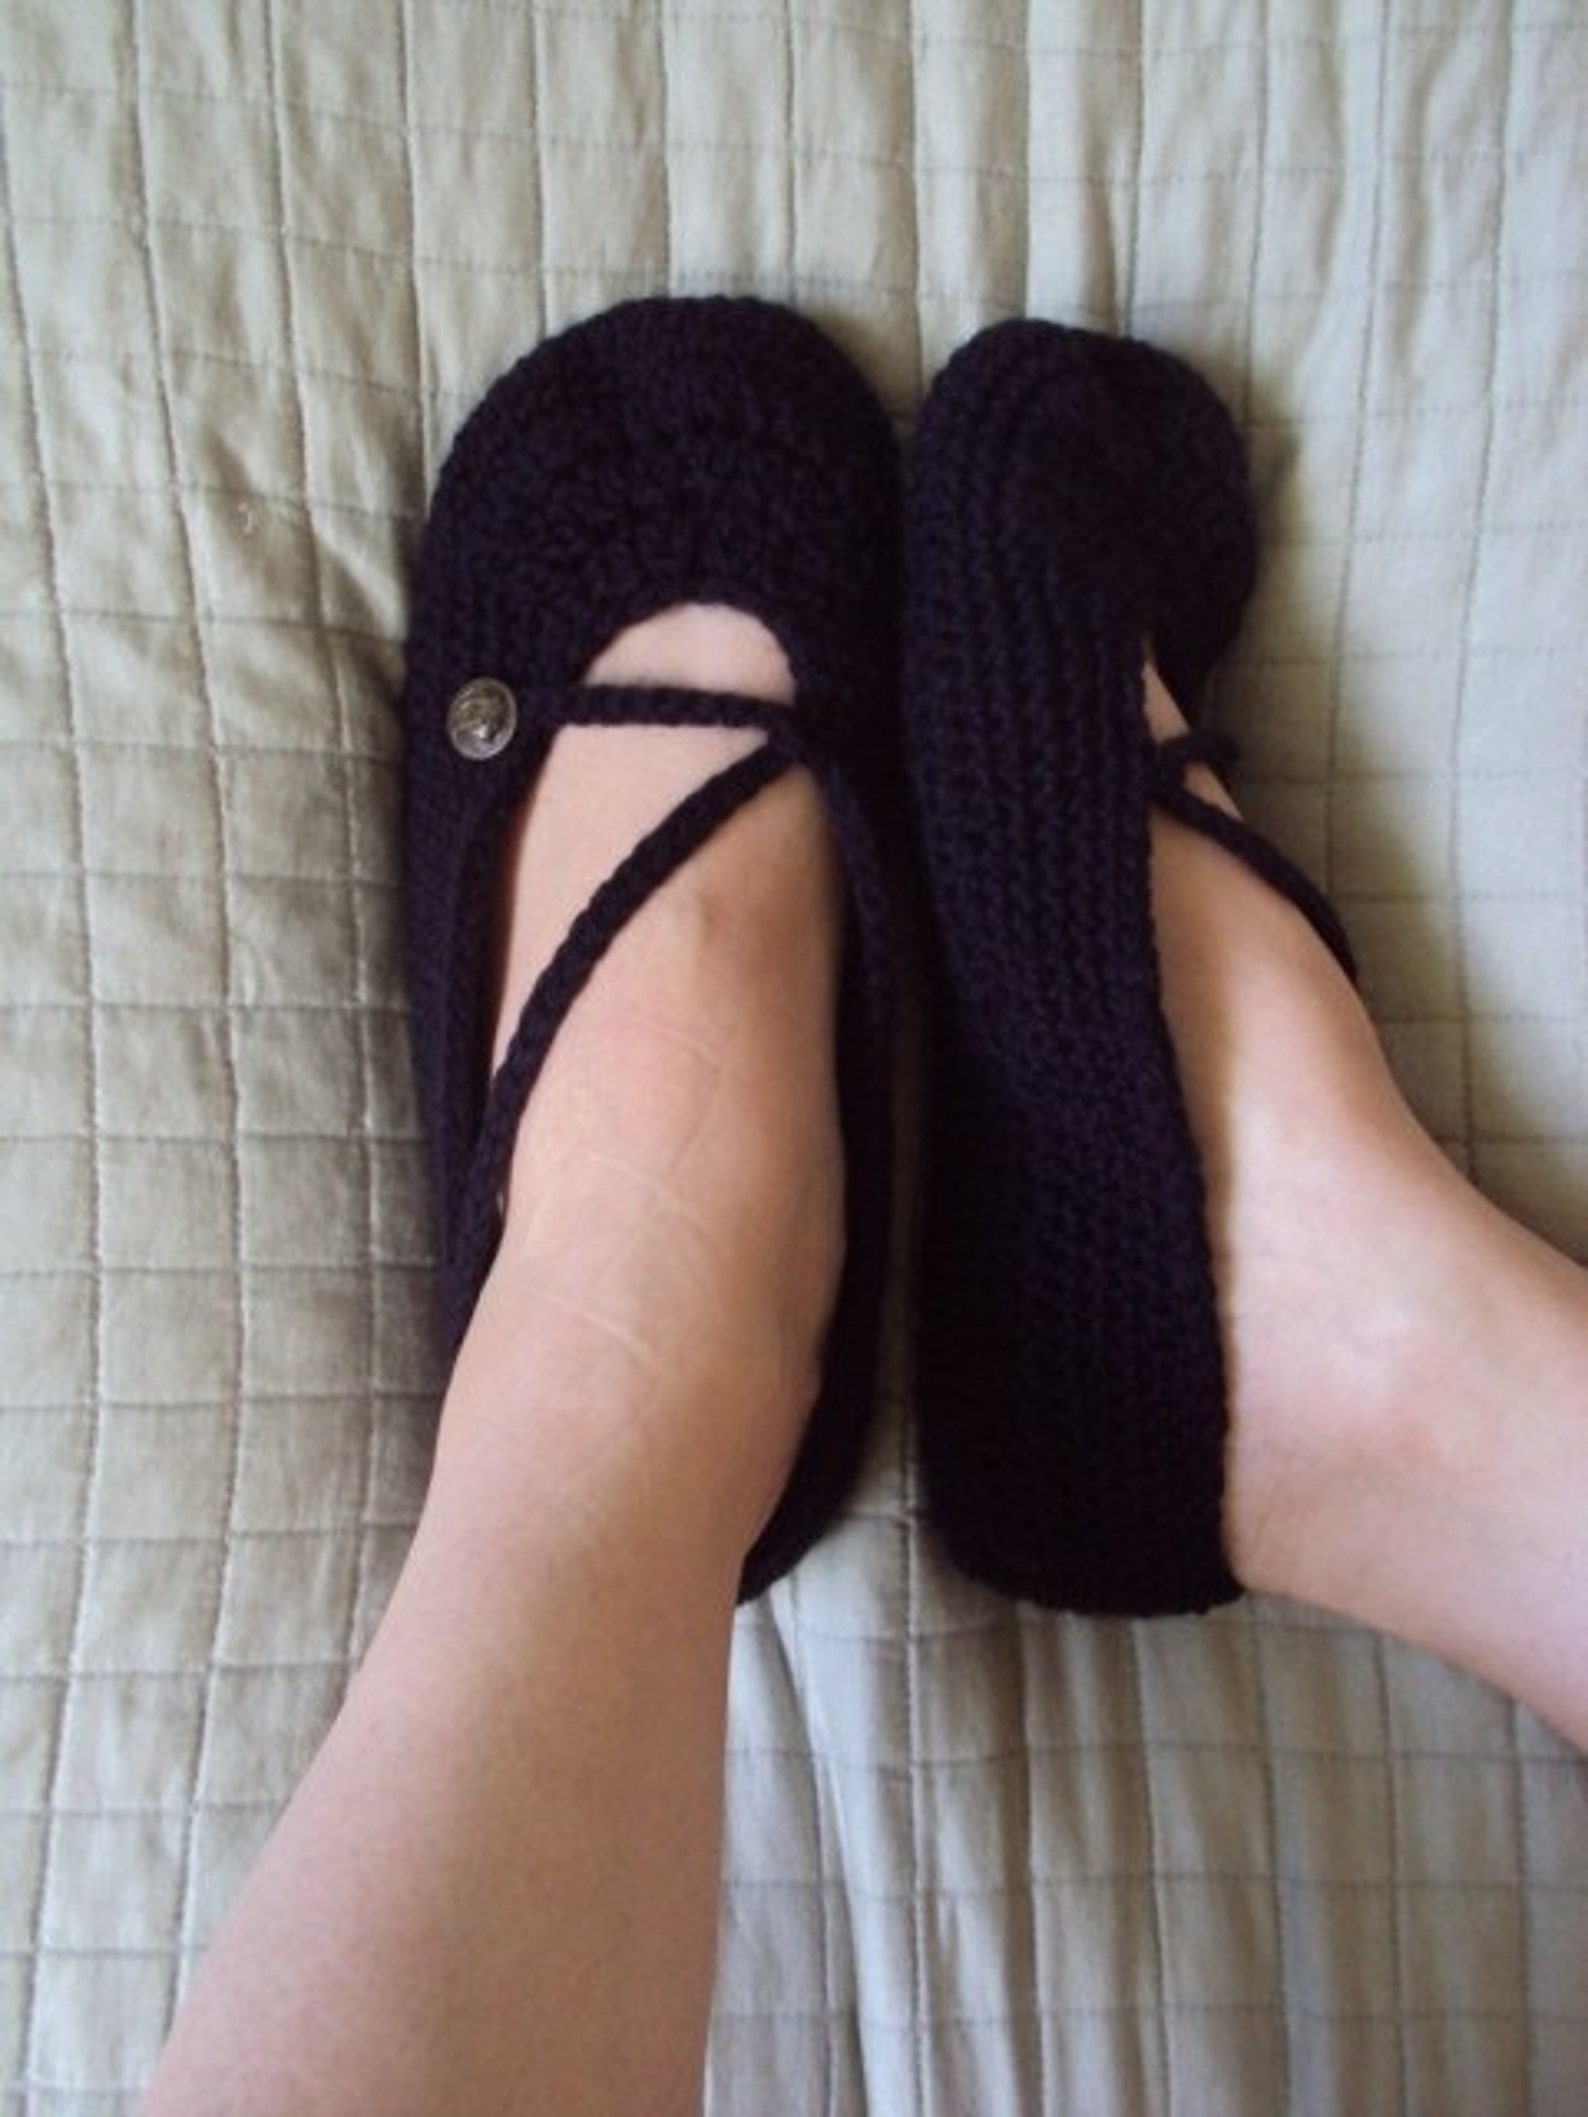 download now - crochet pattern ladies cross-strap ballet flats slippers- pattern pdf